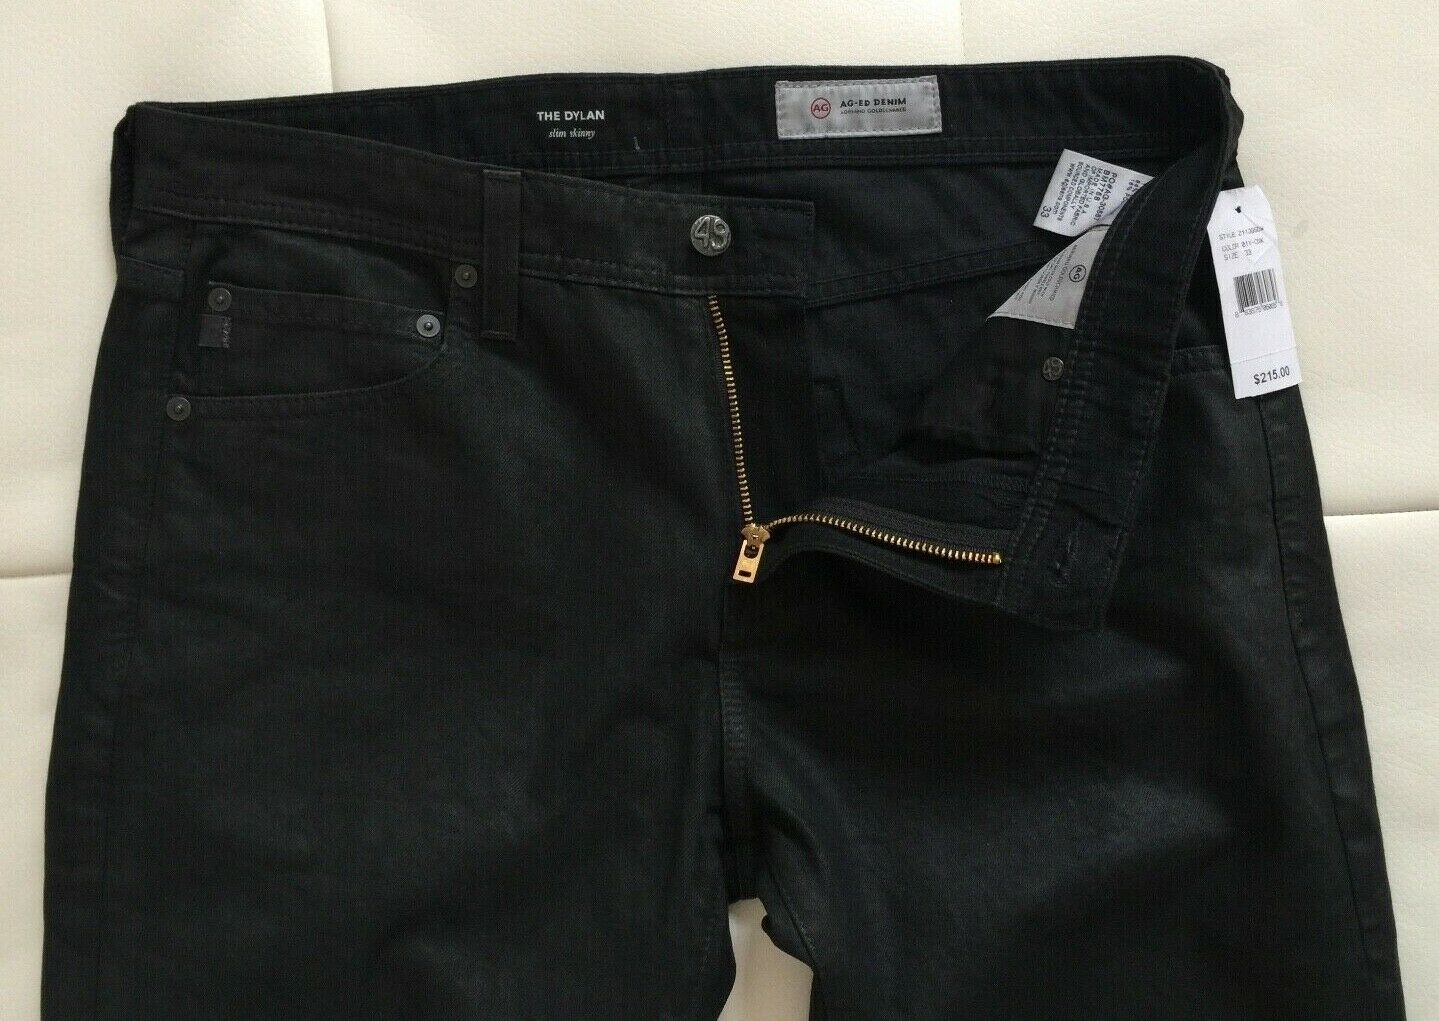 NWT - Adriano goldschmied The Dylan Slim Skinny Jeans(Size - 33X32  Made in USA)